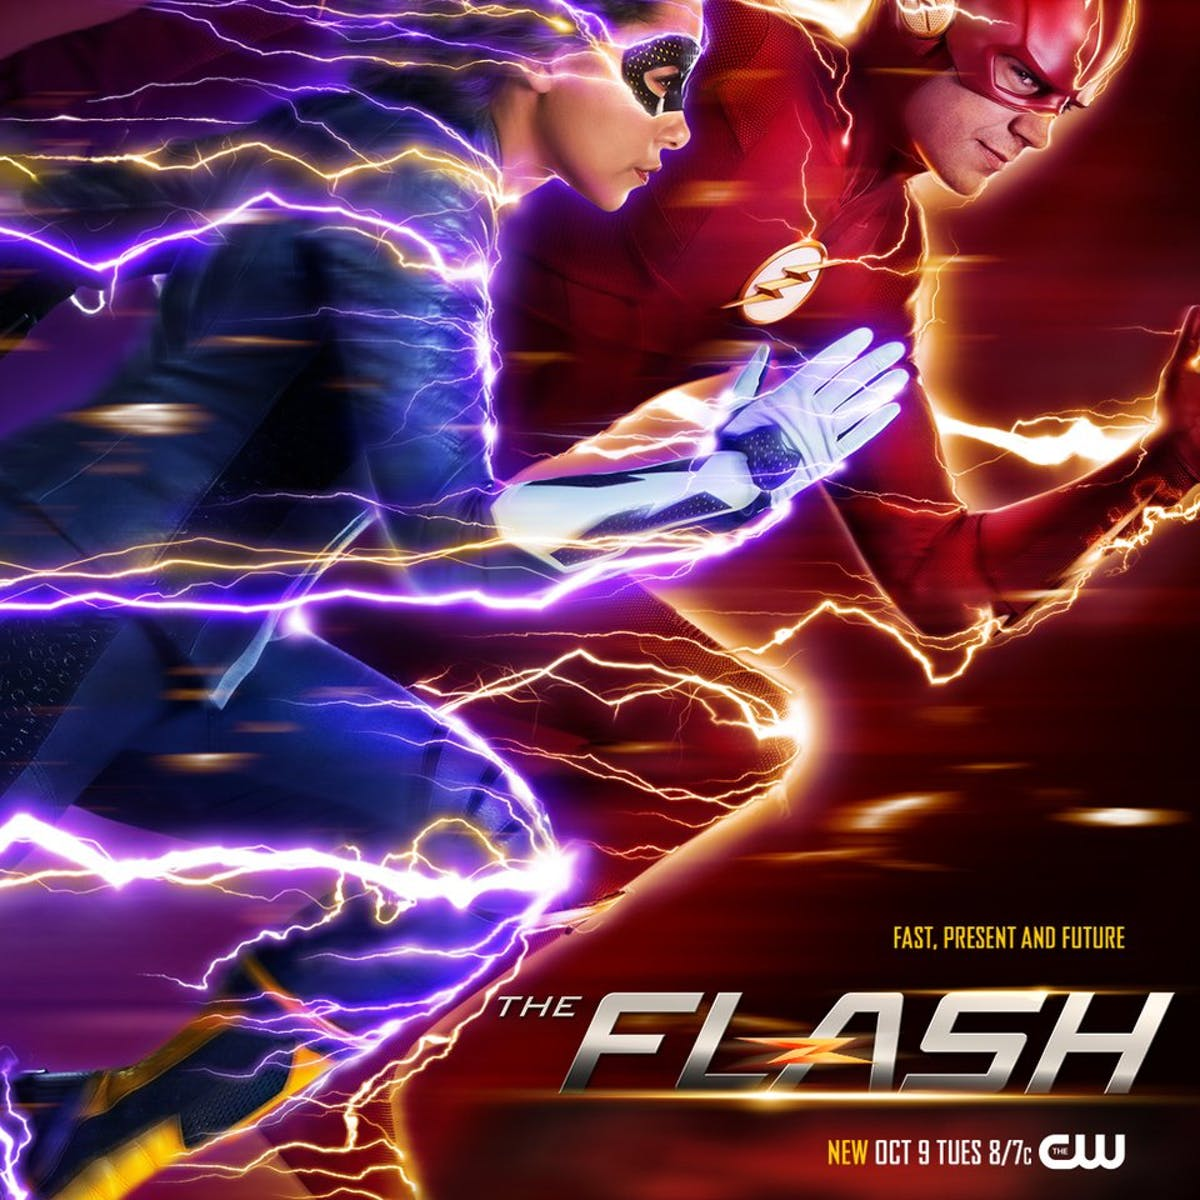 The Flash' Season 5 Release Date, Plot, Villain, and